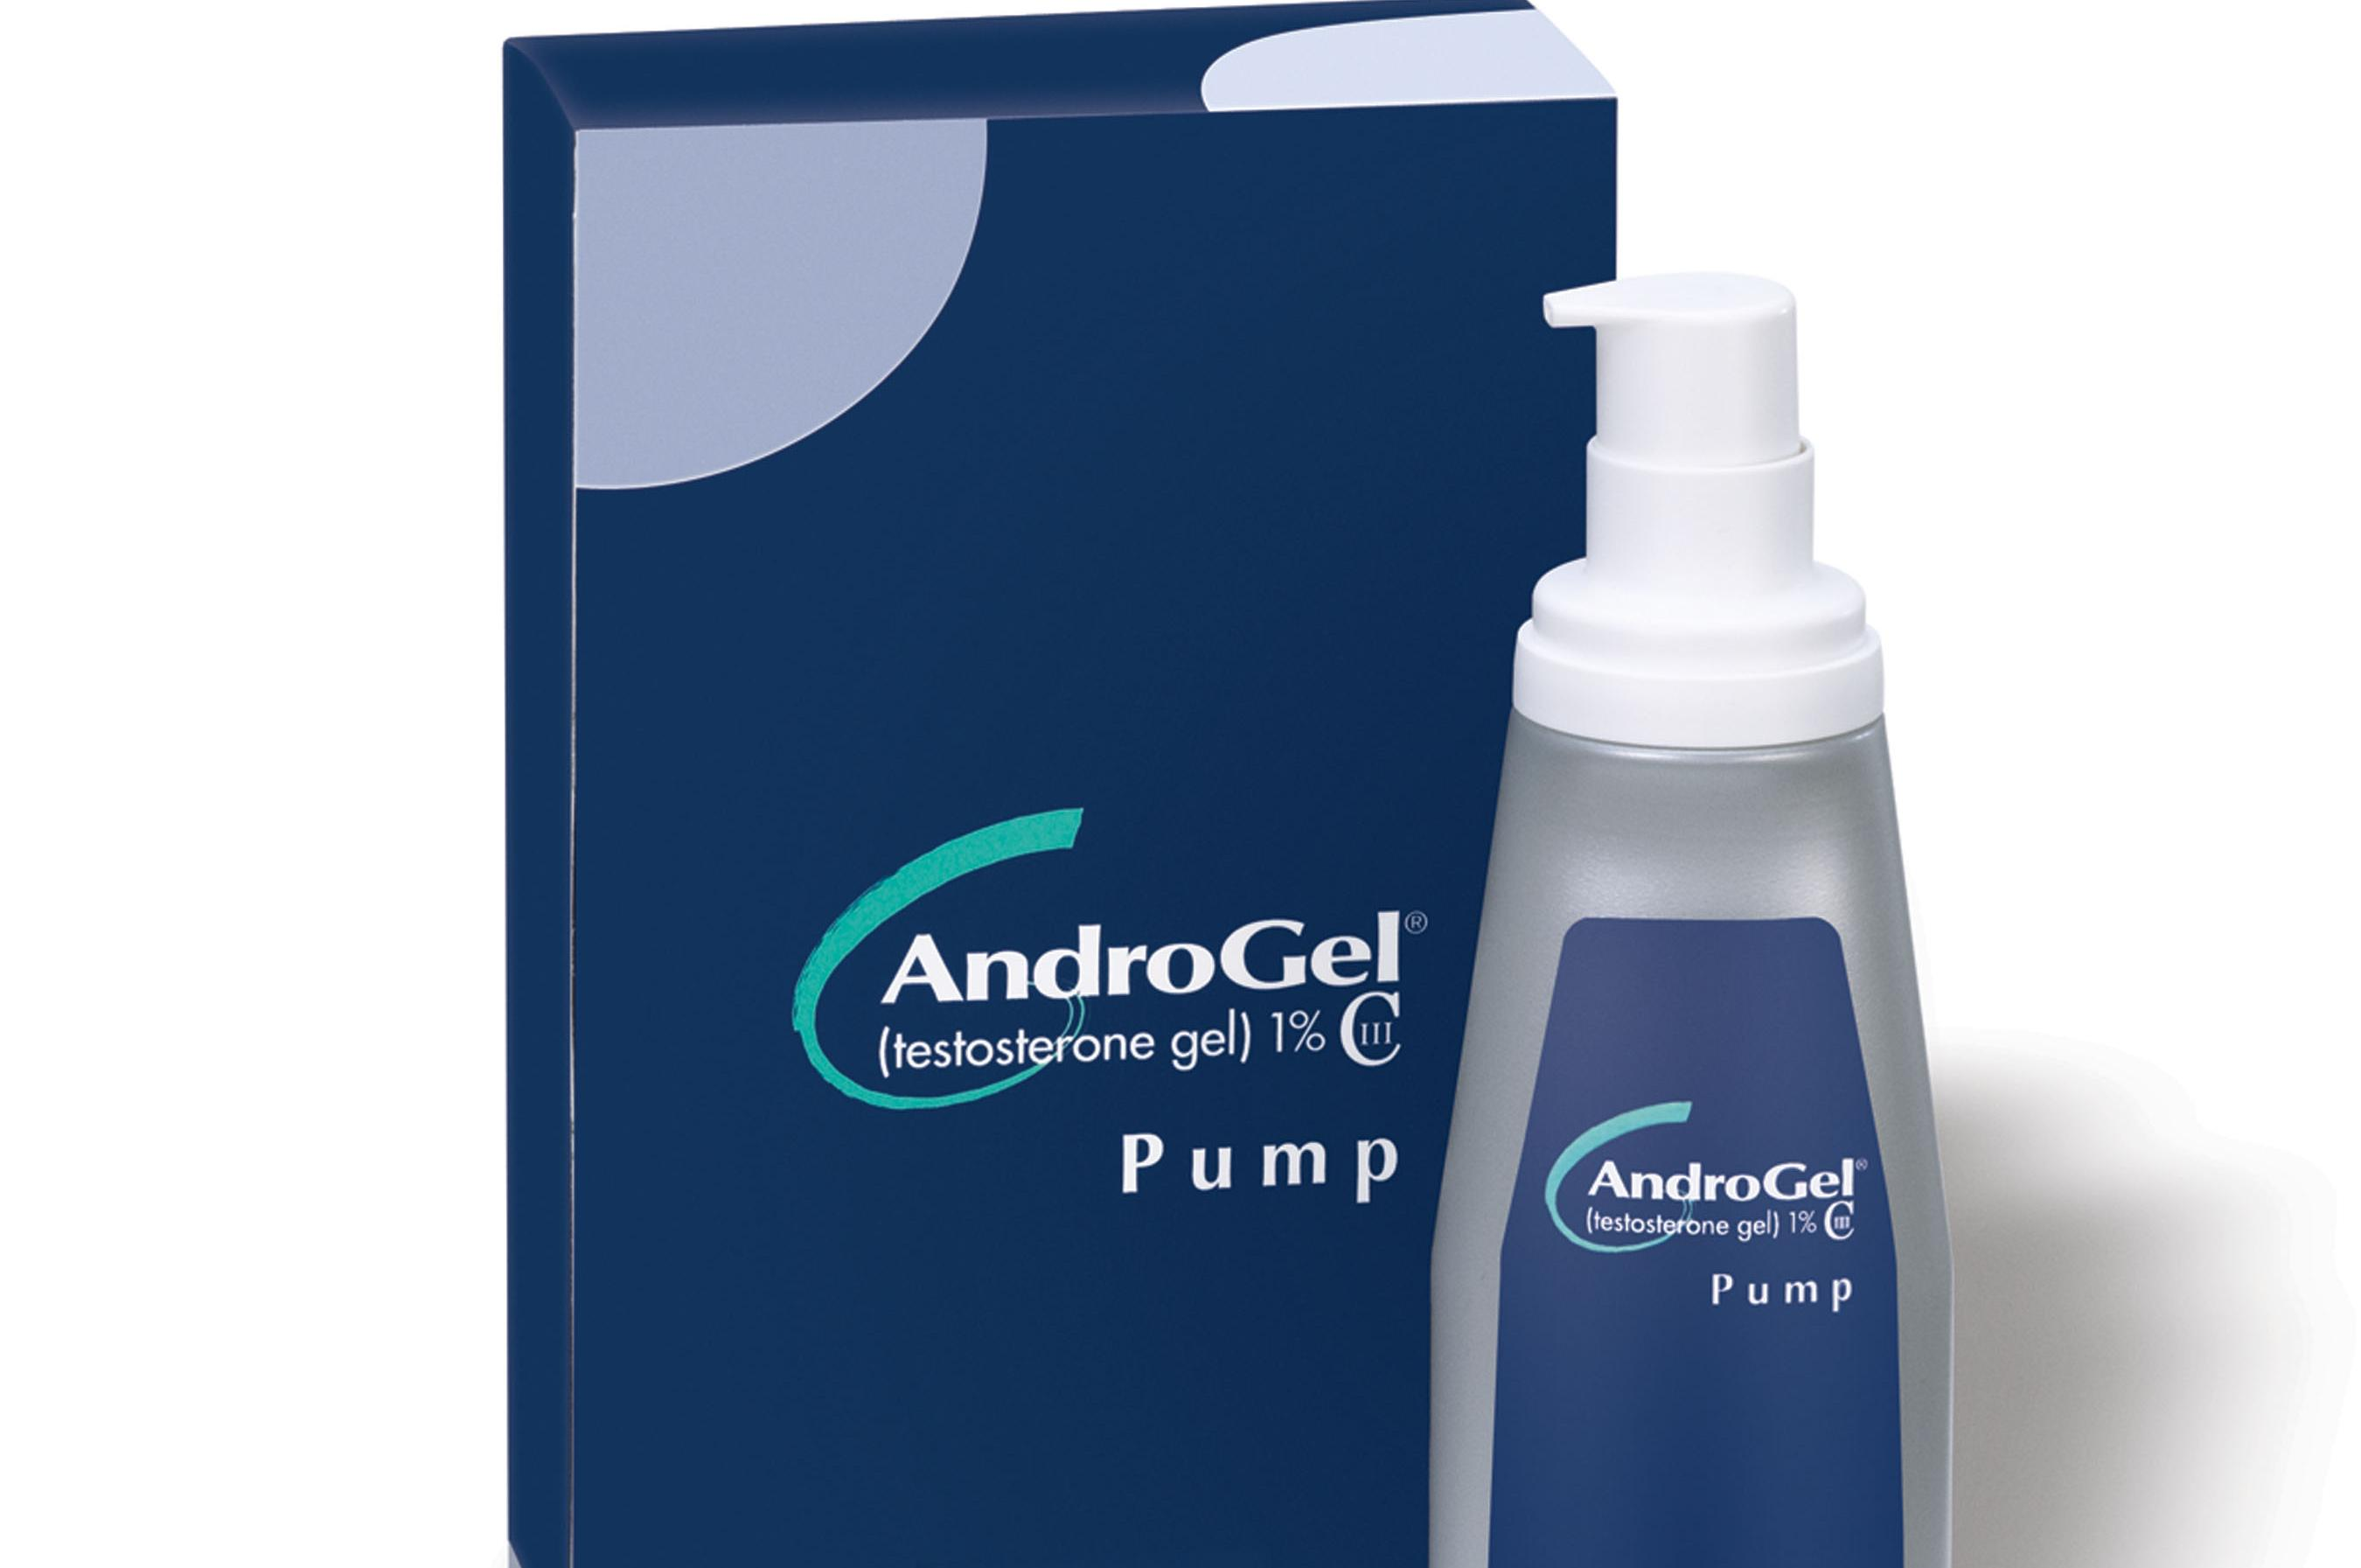 Howto End Getting Androgel